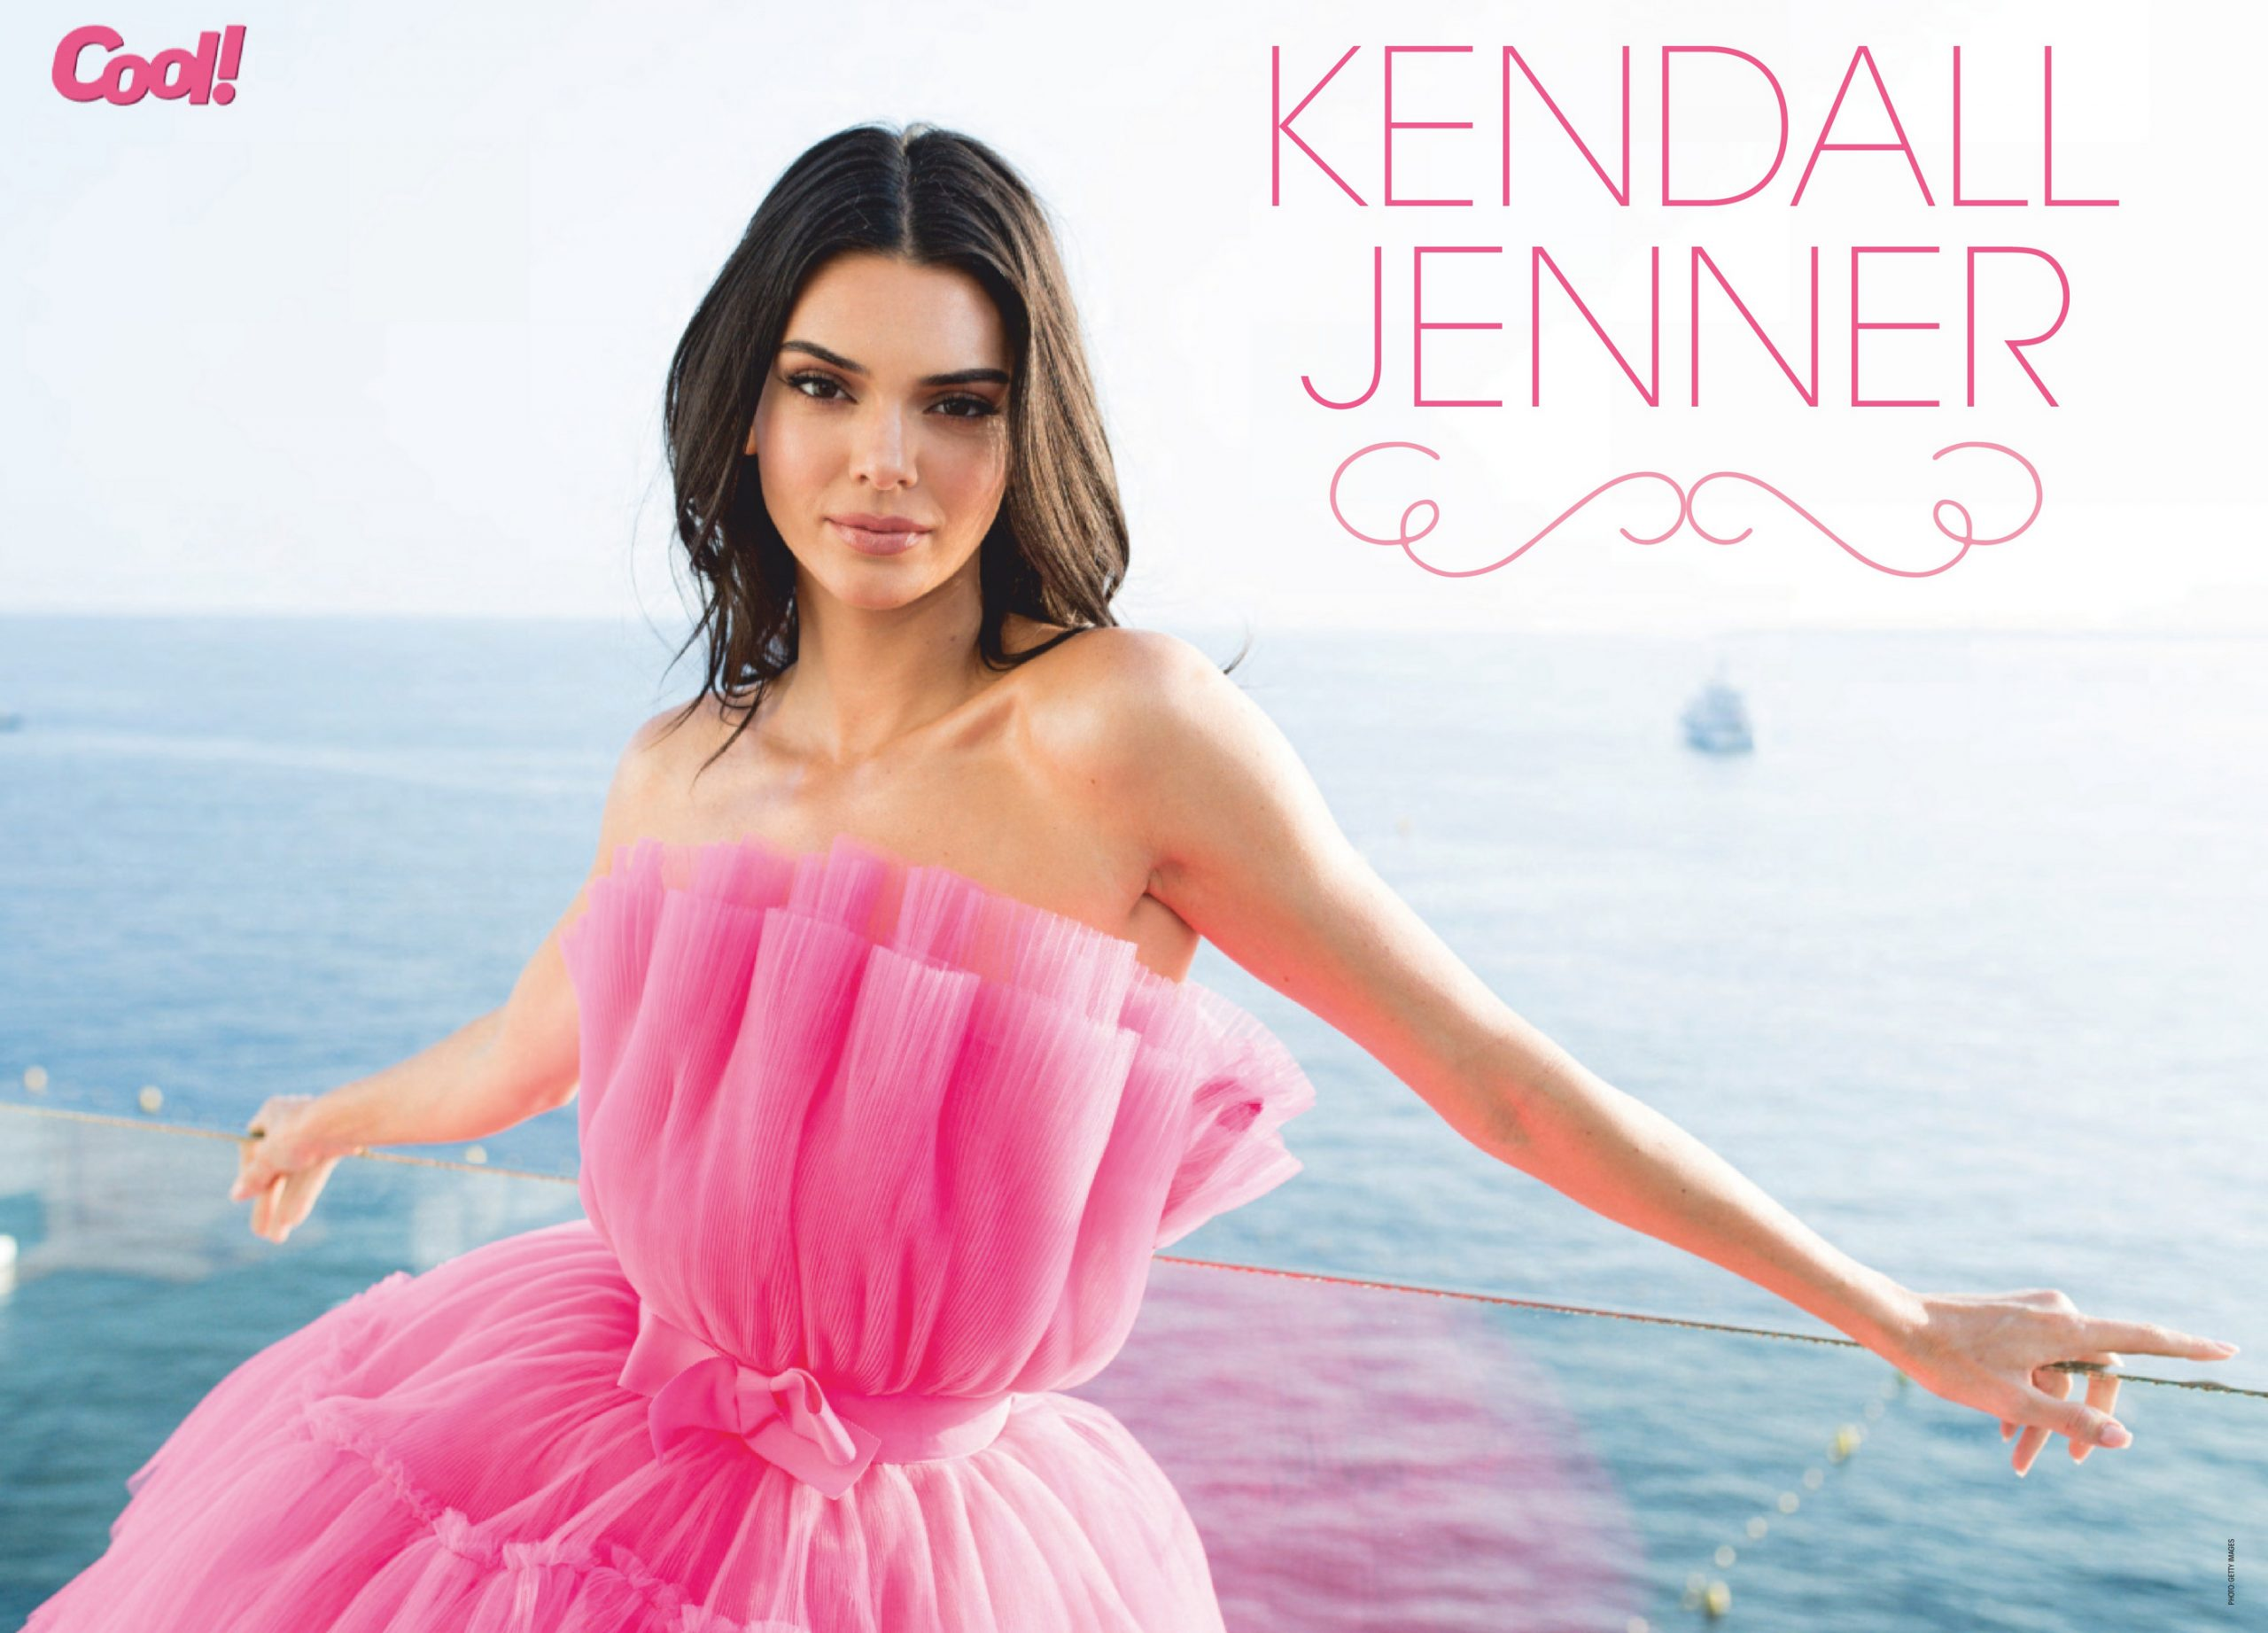 Kendall Jenner - Cool Magazine (Canada - May 2020 issue)